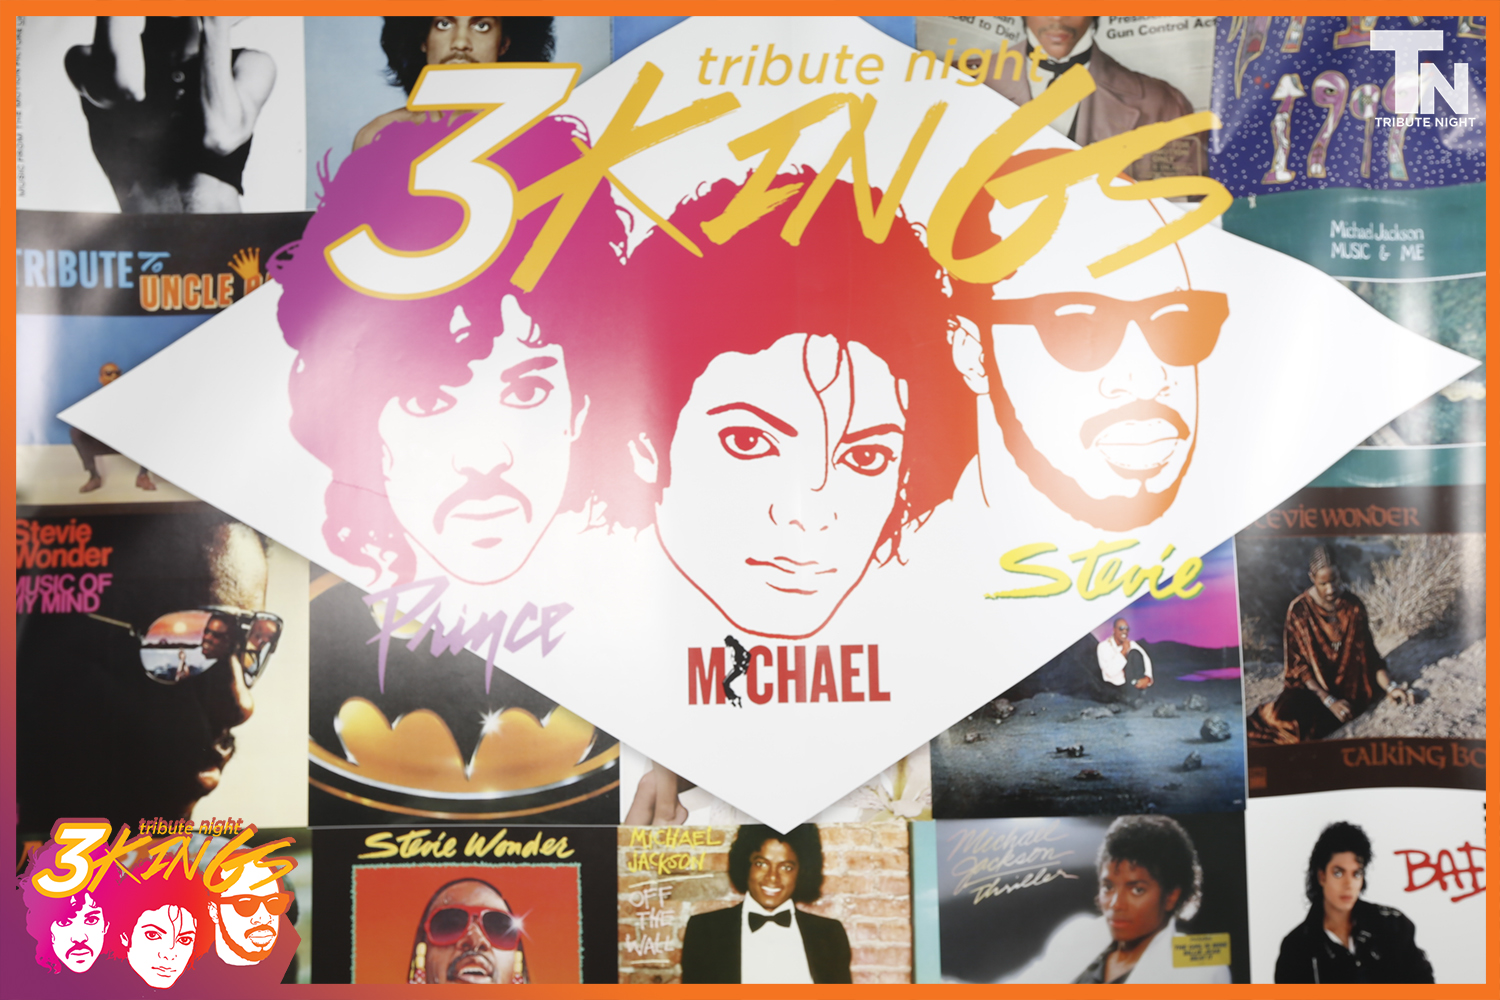 3kings Tribute Night Logo011.jpg